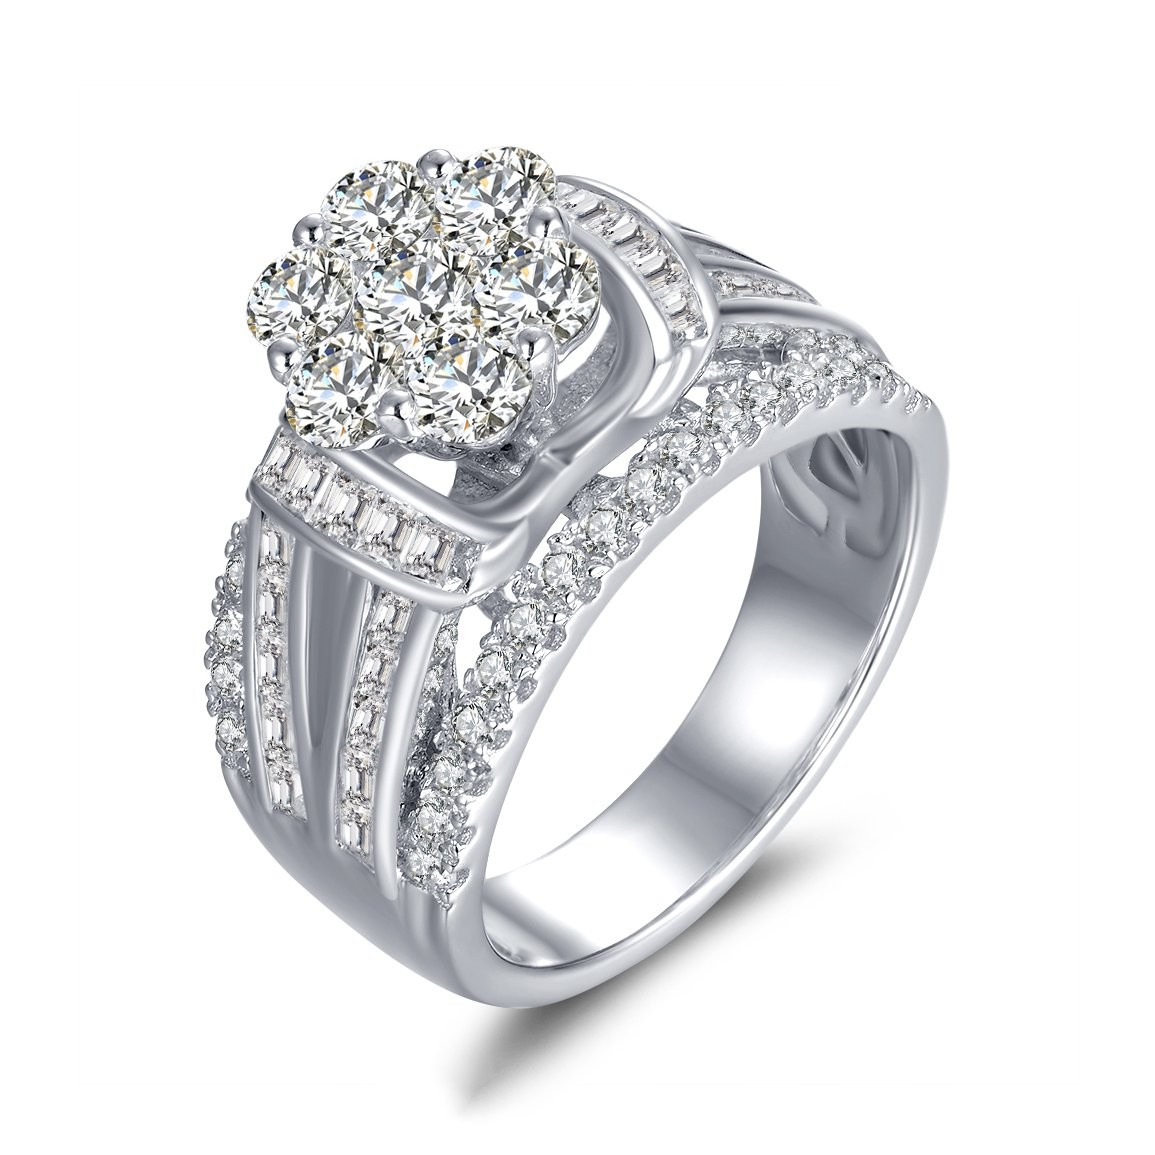 cmzmyvz diamond bands engagement kirk by rings kara up engagment designer captivating